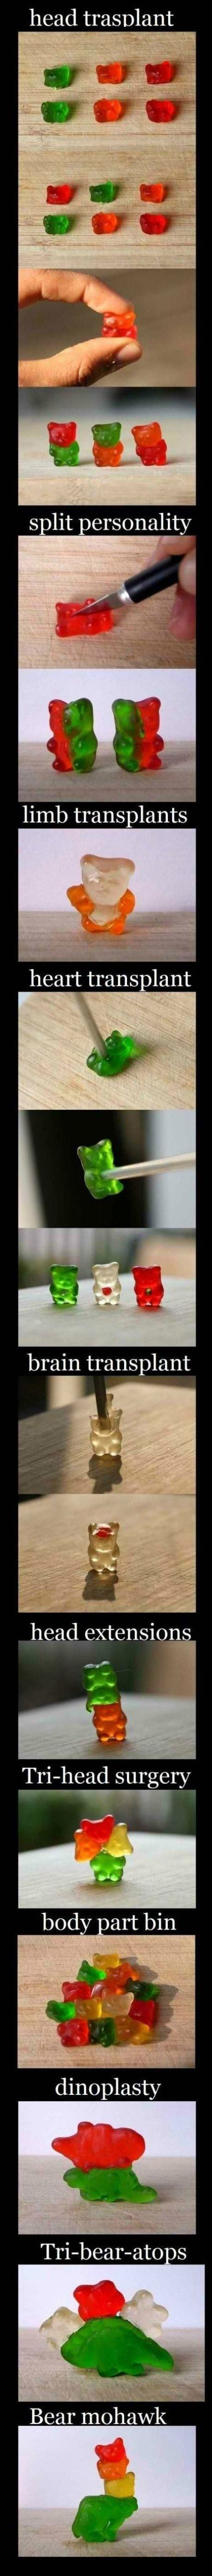 Things to do with gummy bears.